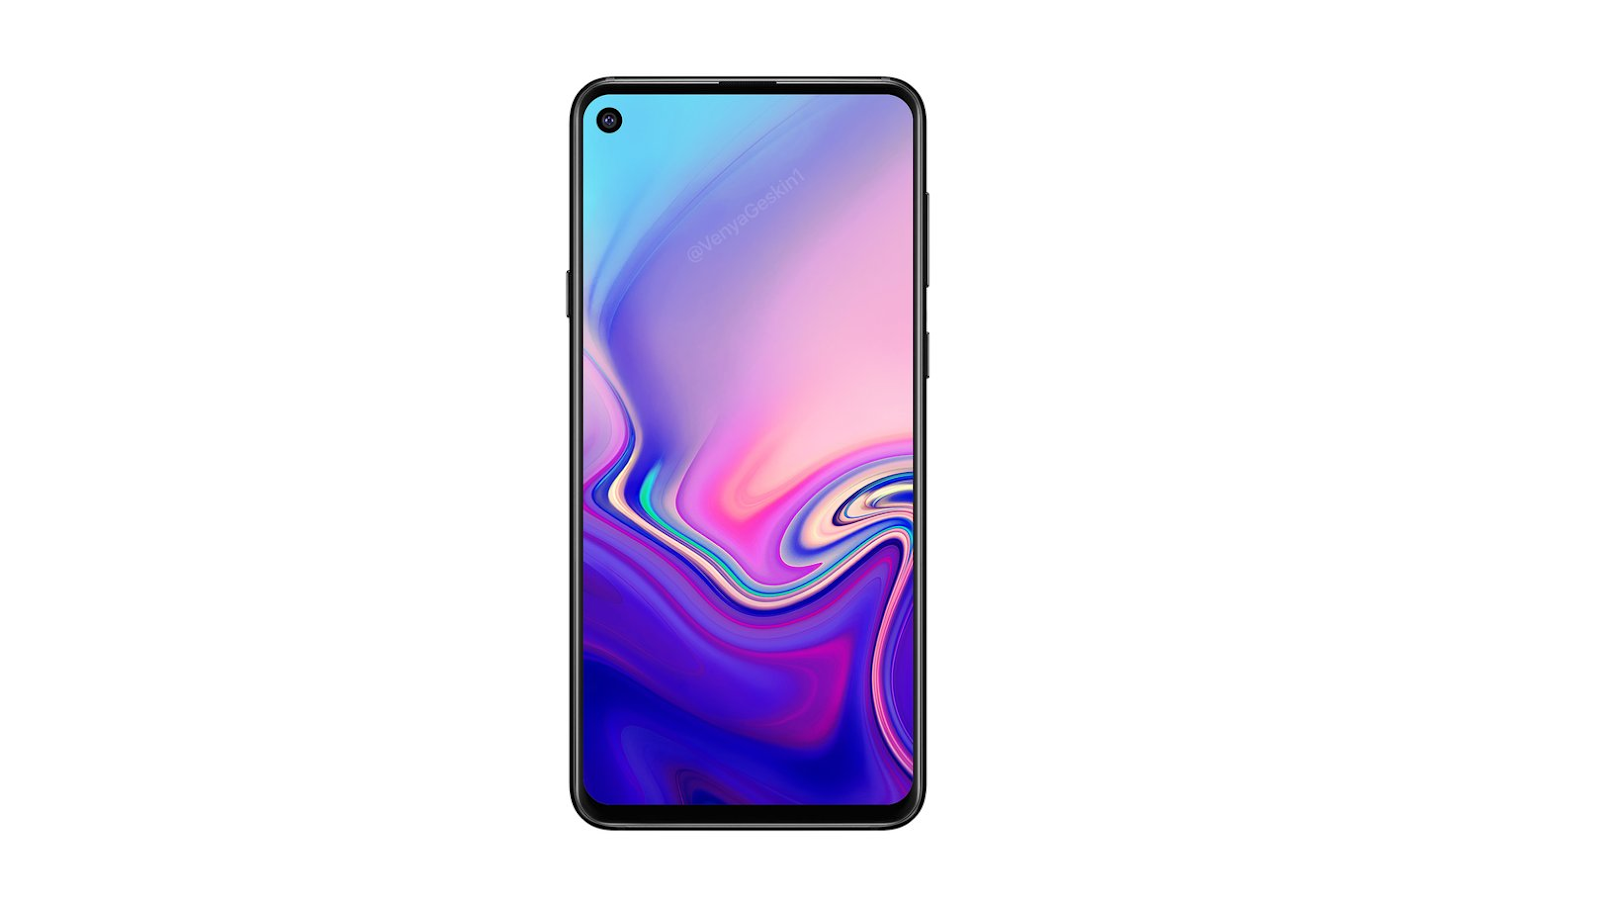 Samsung Galaxy S10+, S10 Lite, S10 will have Infinity O display